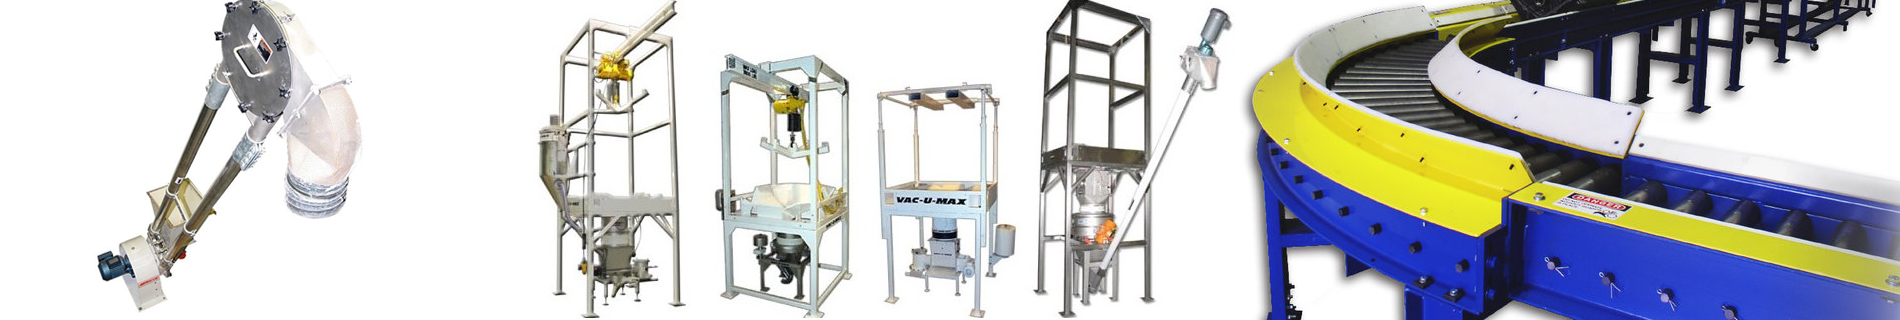 Conveyor Systems banner